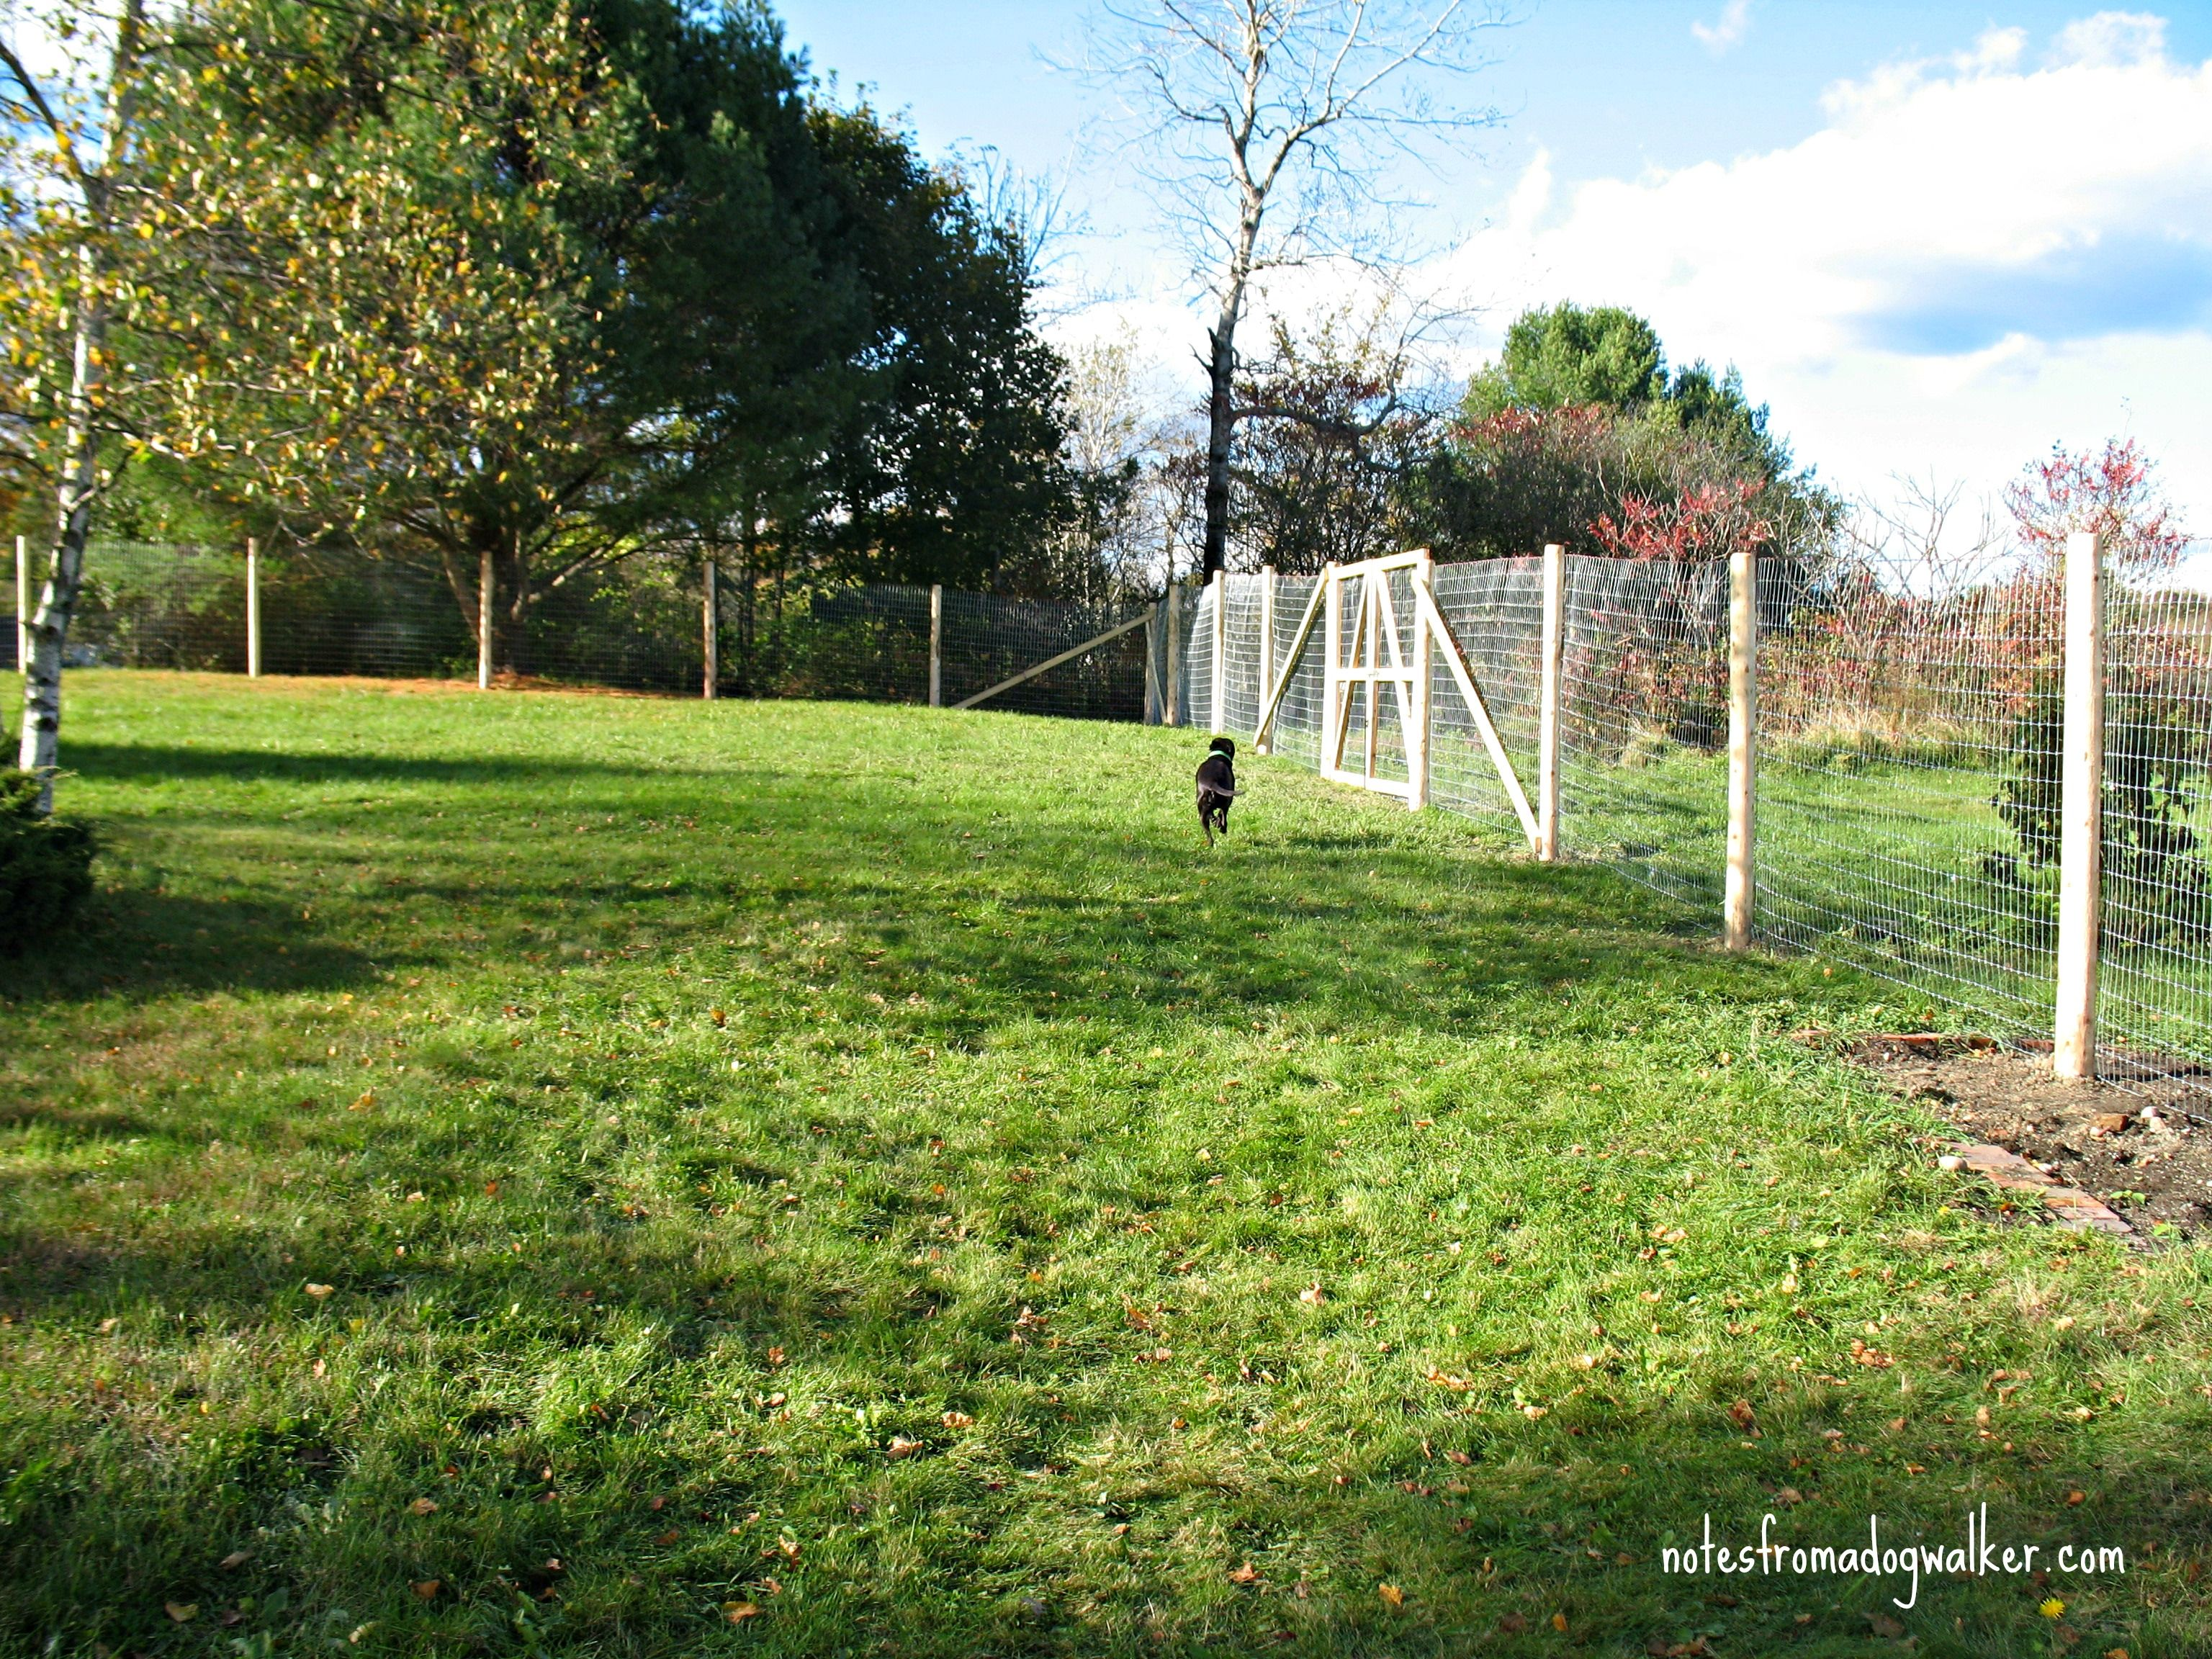 7 Ways To Dog Proof Fence U003d Great Article On Dog Fencing And Dog Run!